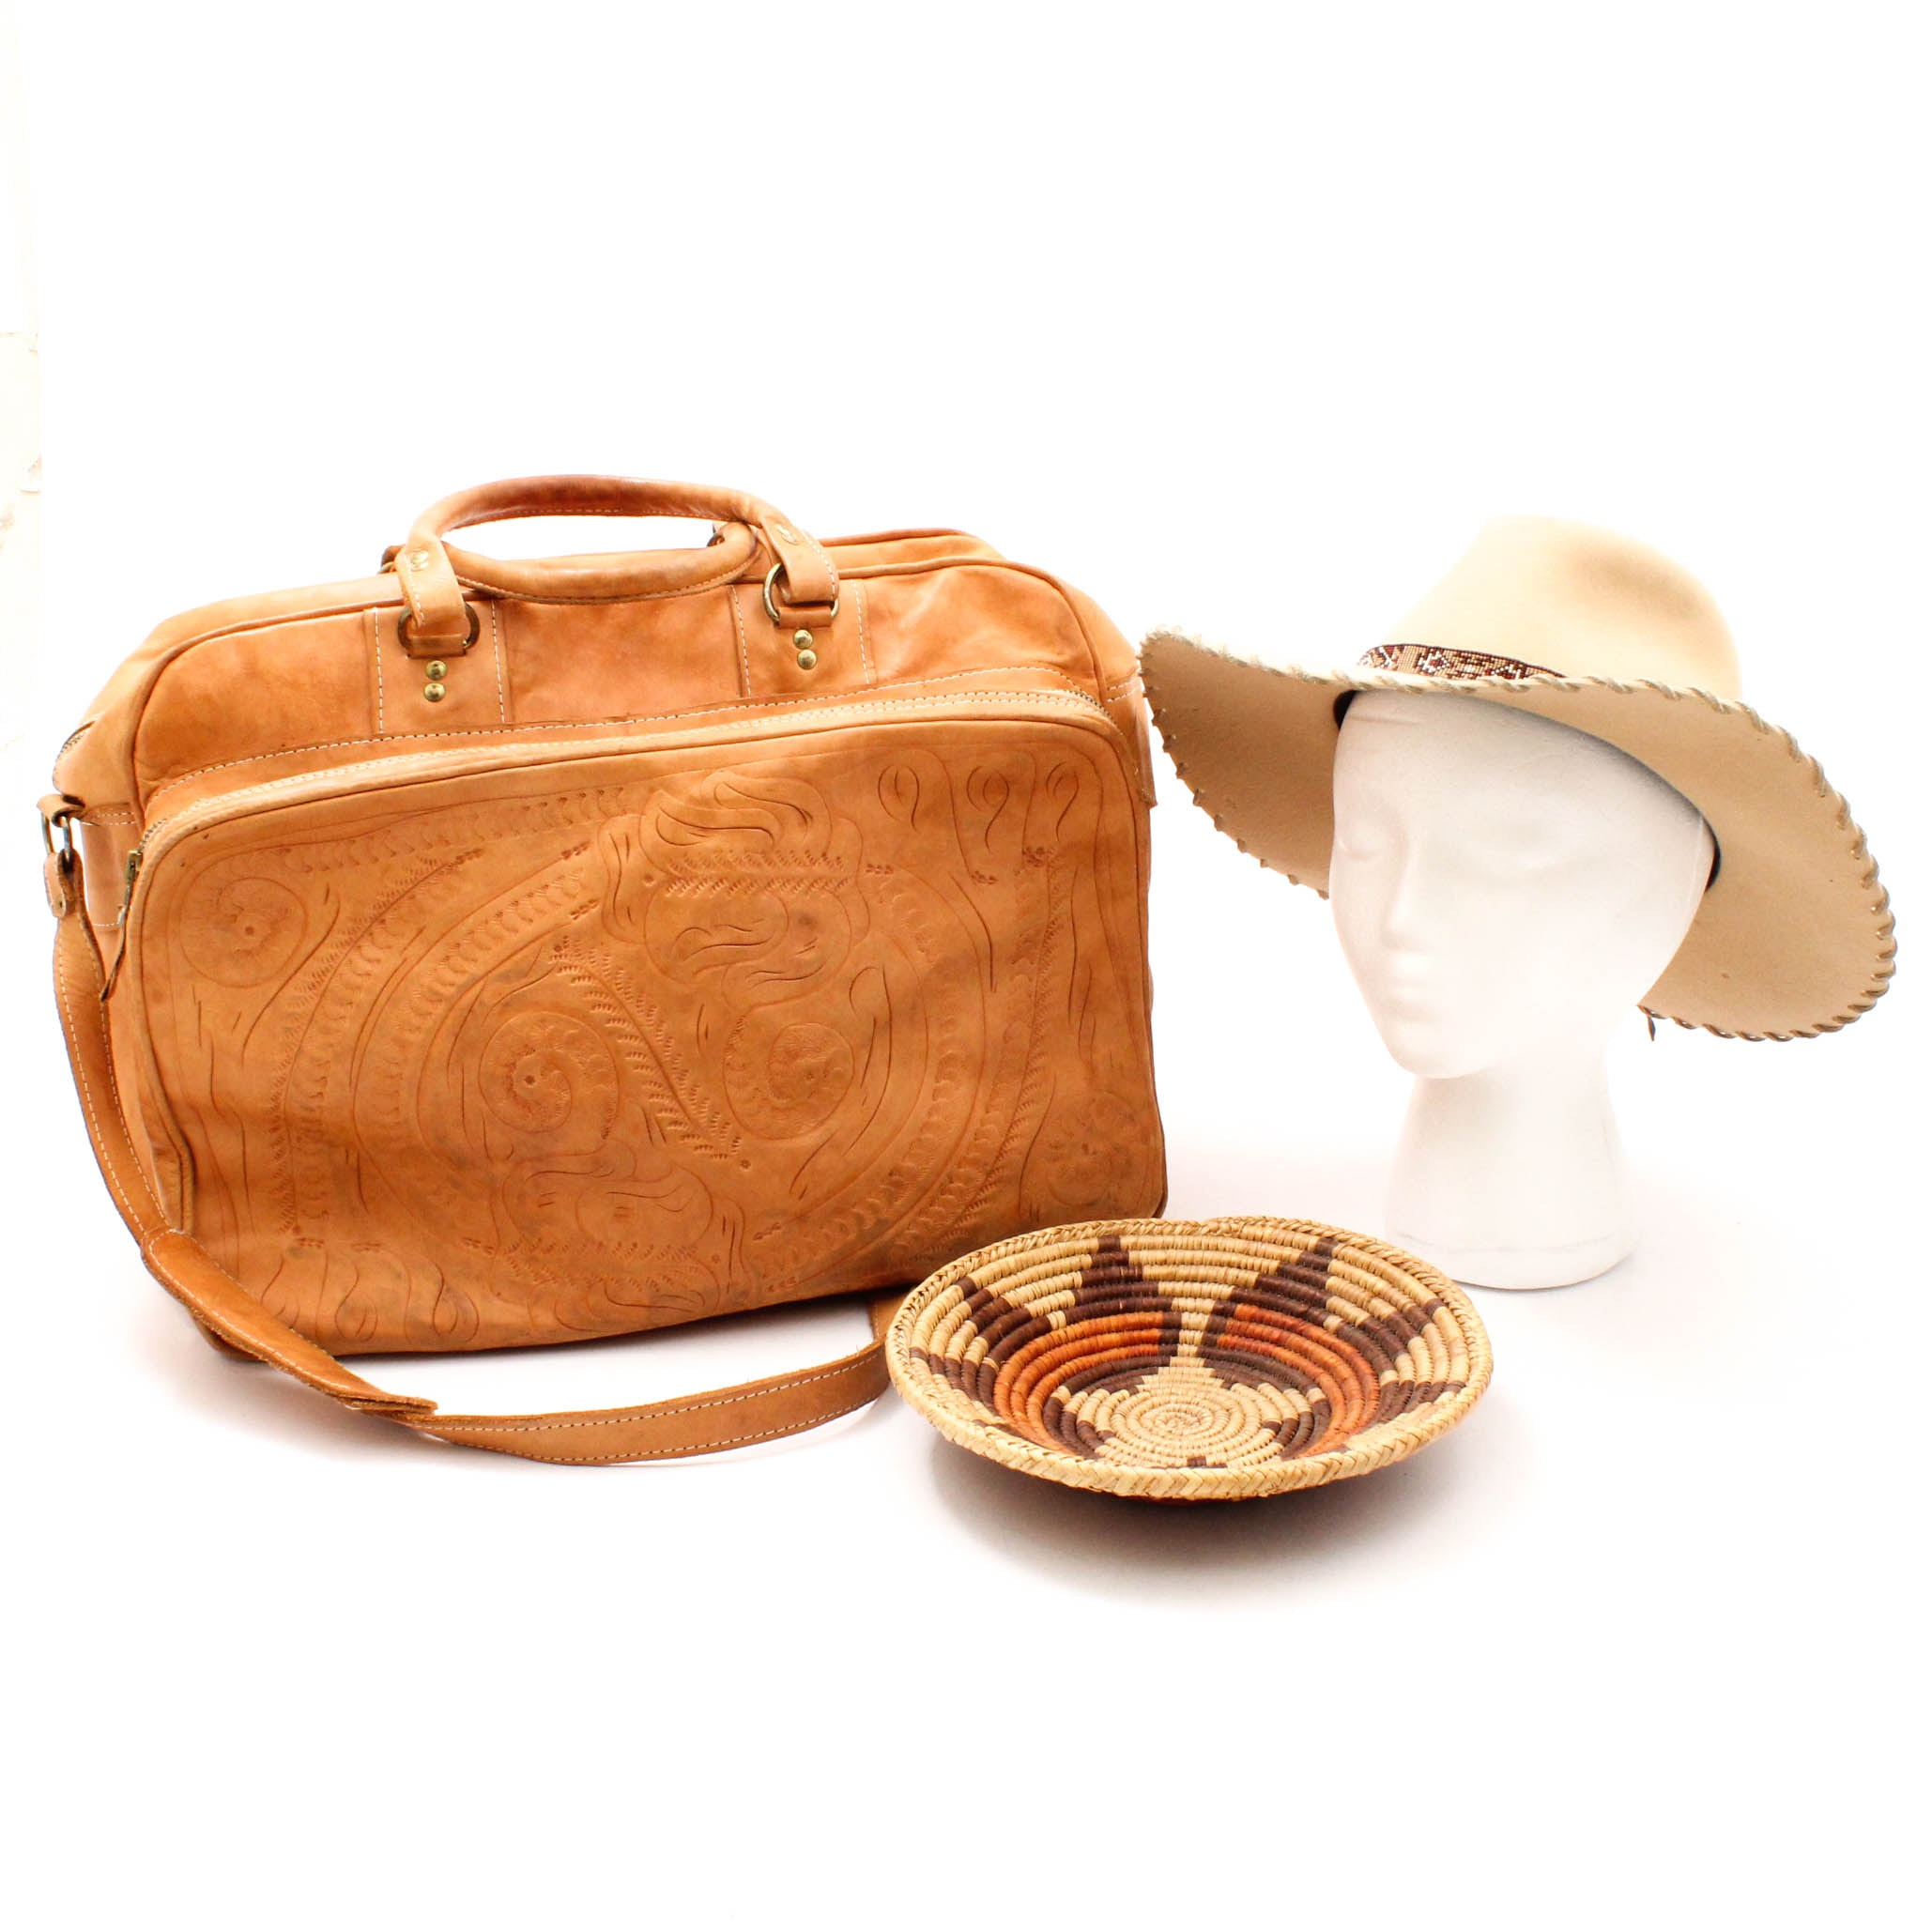 Southwestern-Style Beaded Hat Band, Tooled Leather Satchel and Woven Basket